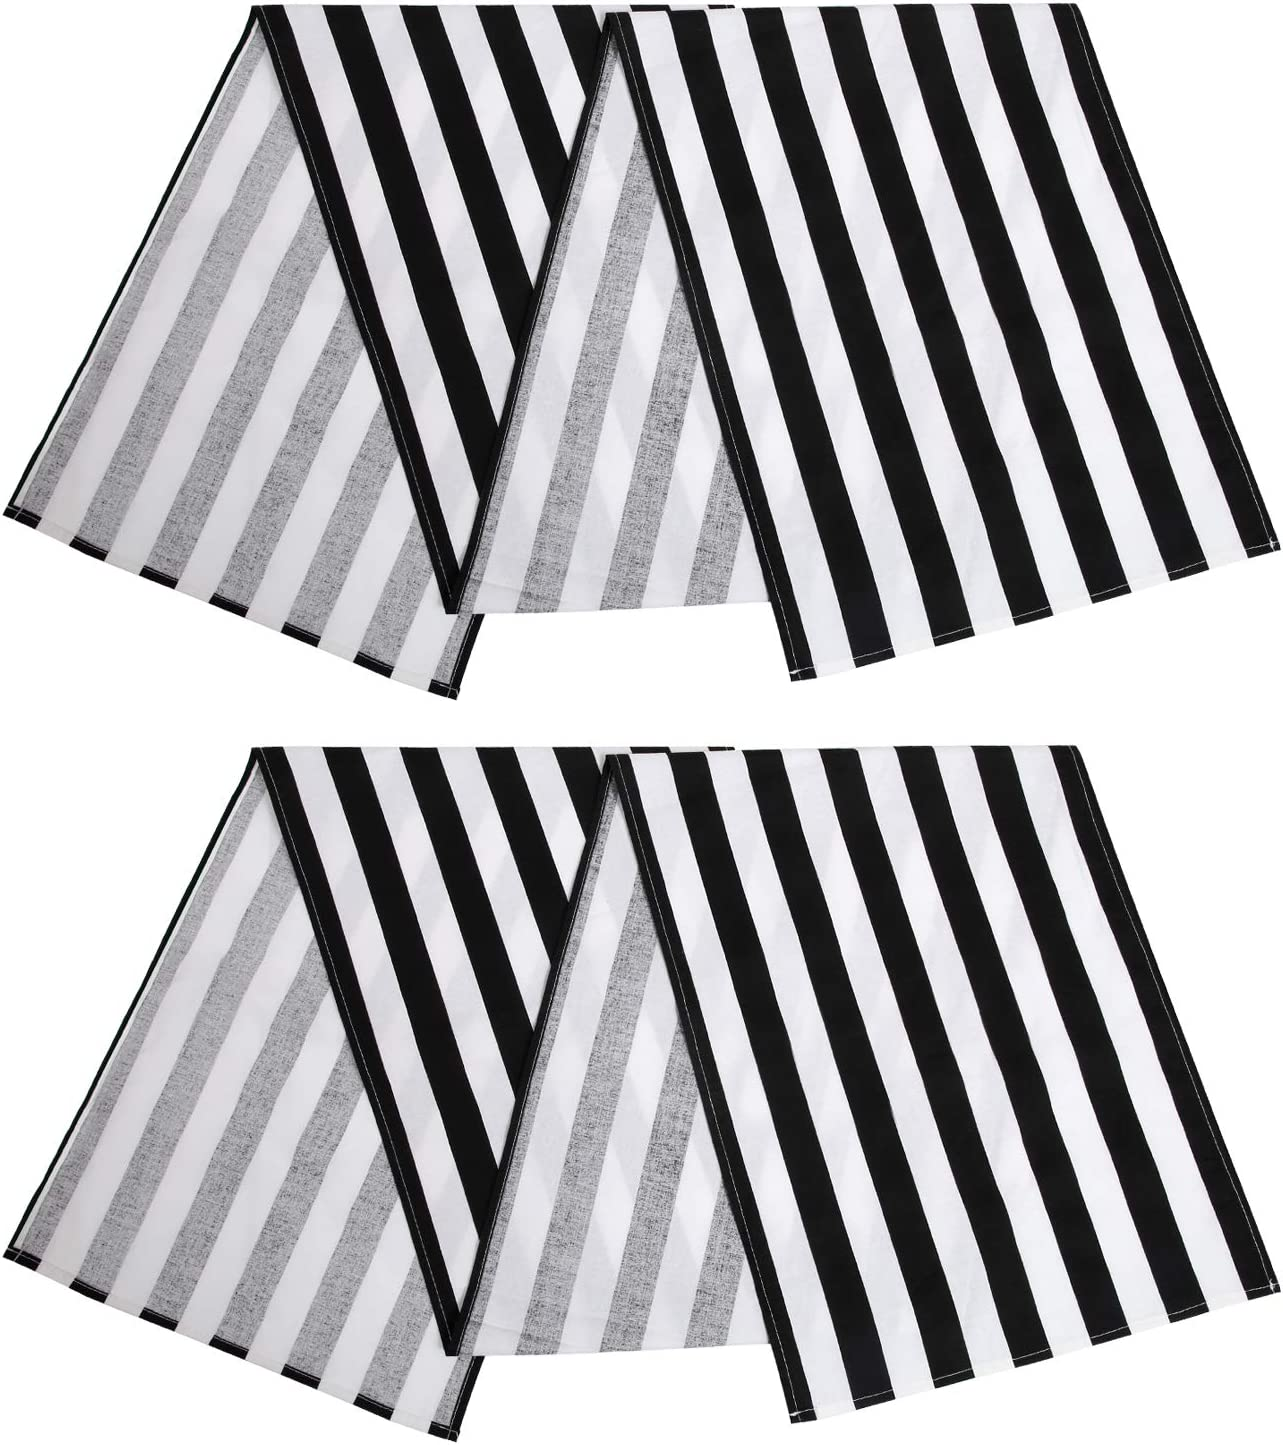 Aneco 2 Pack Striped Table Runner Cotton Striped Table Runner Modern Striped Design Table Runner Elegant Decor for Indoor Outdoor Events 13 x 72 Inches Black and White